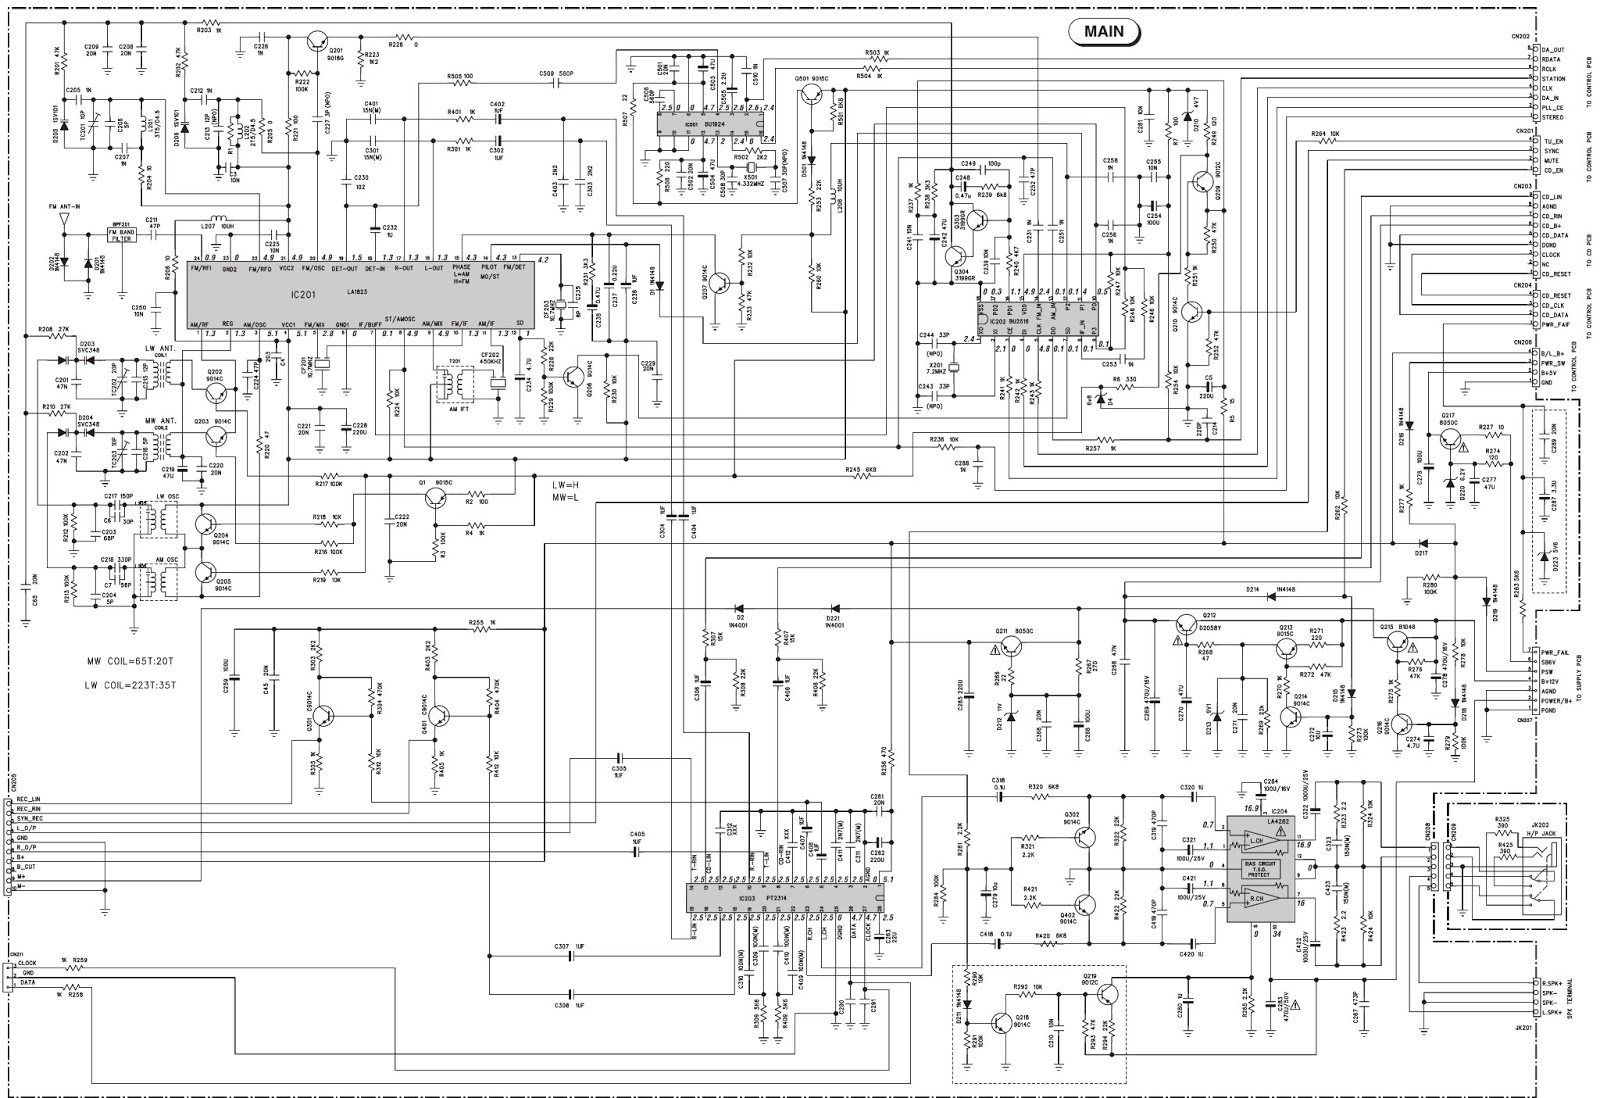 yamaha+amp+section.bmp yamaha _ thomson cs 100 cs 105 schematic diagram [circuit yamaha schematic diagram at n-0.co